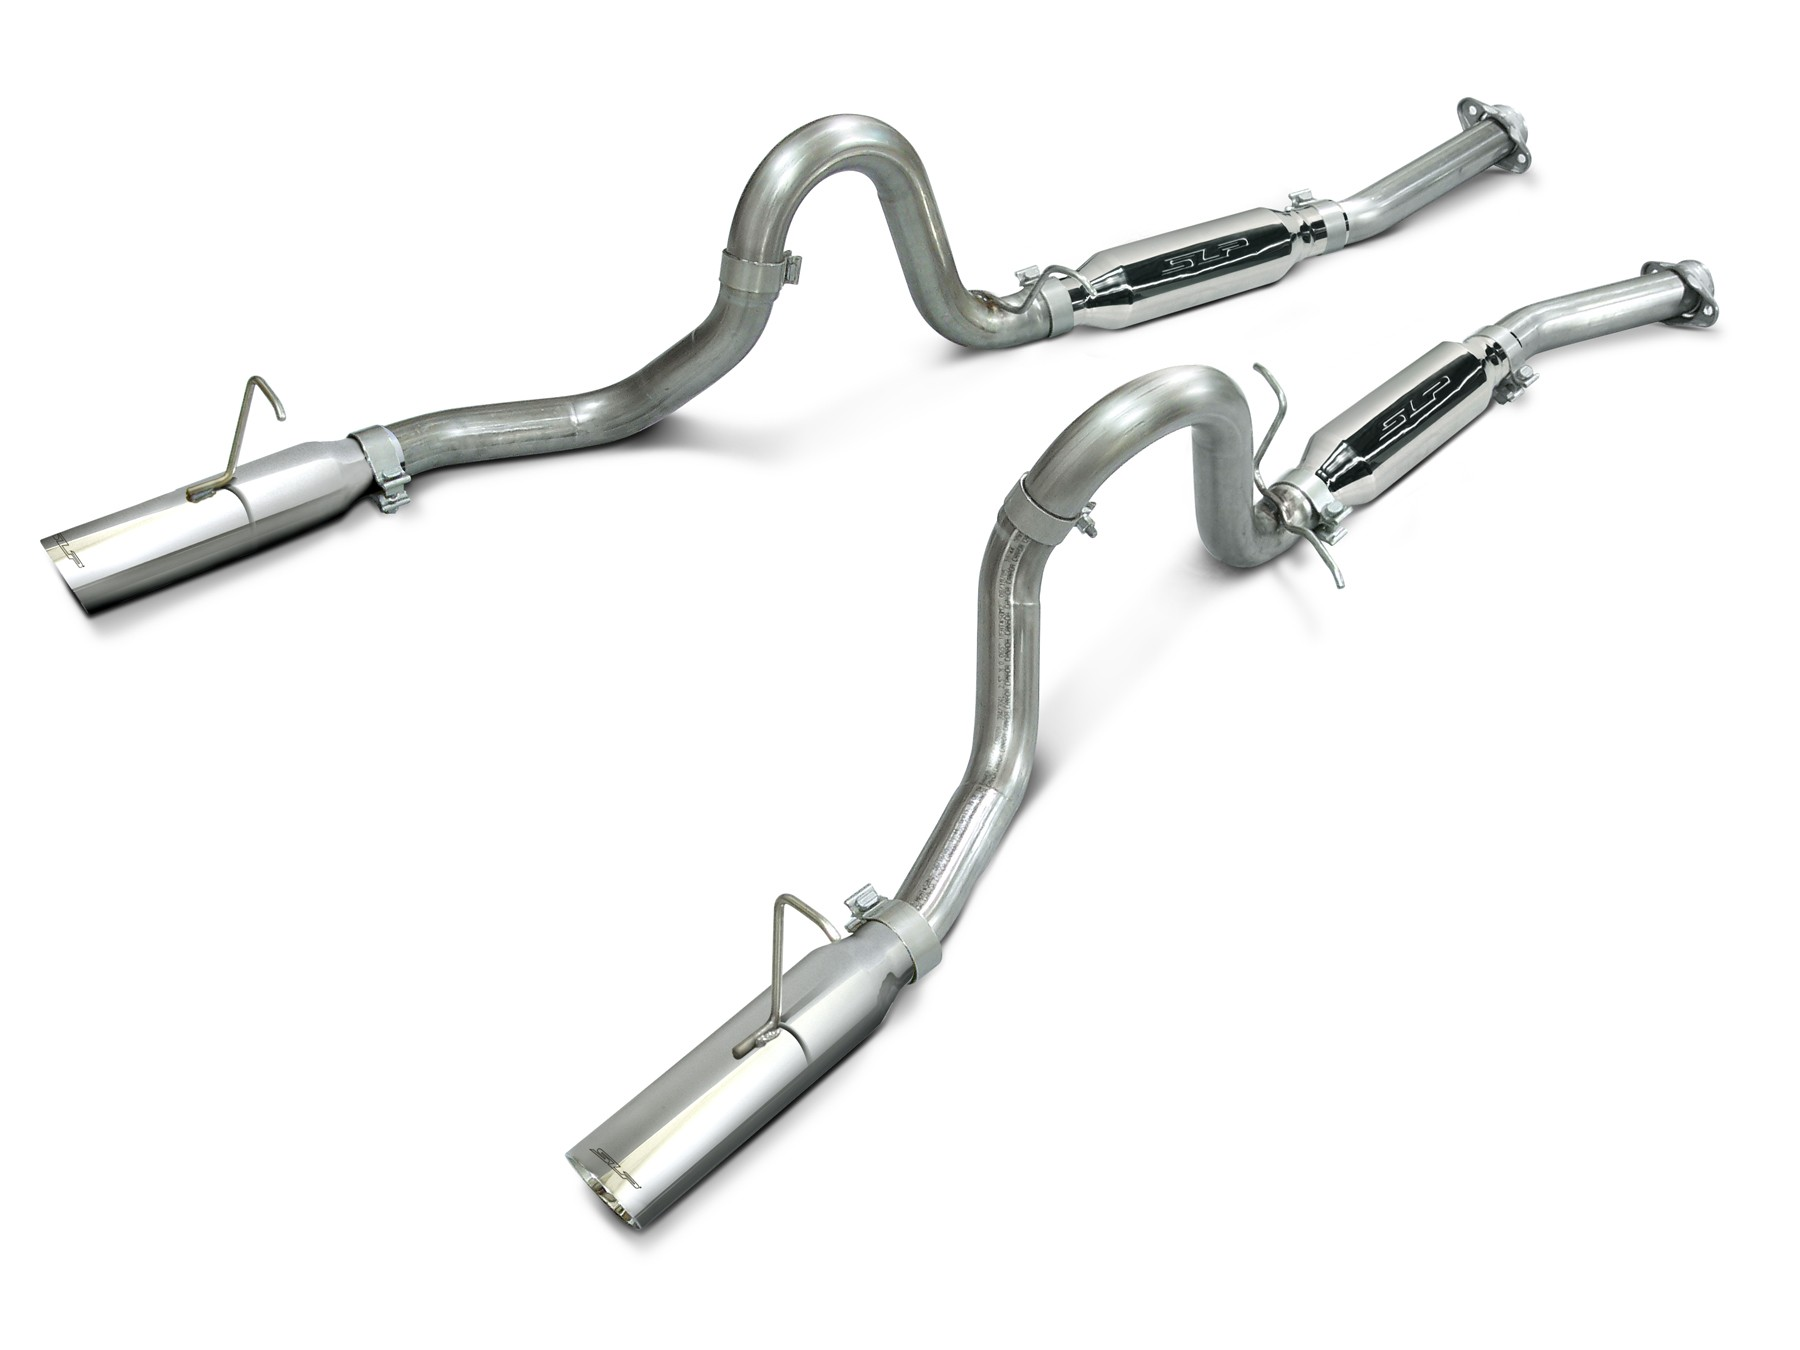 Mustang Lx Cobra Slp Loud Mouth Cat Back Exhaust